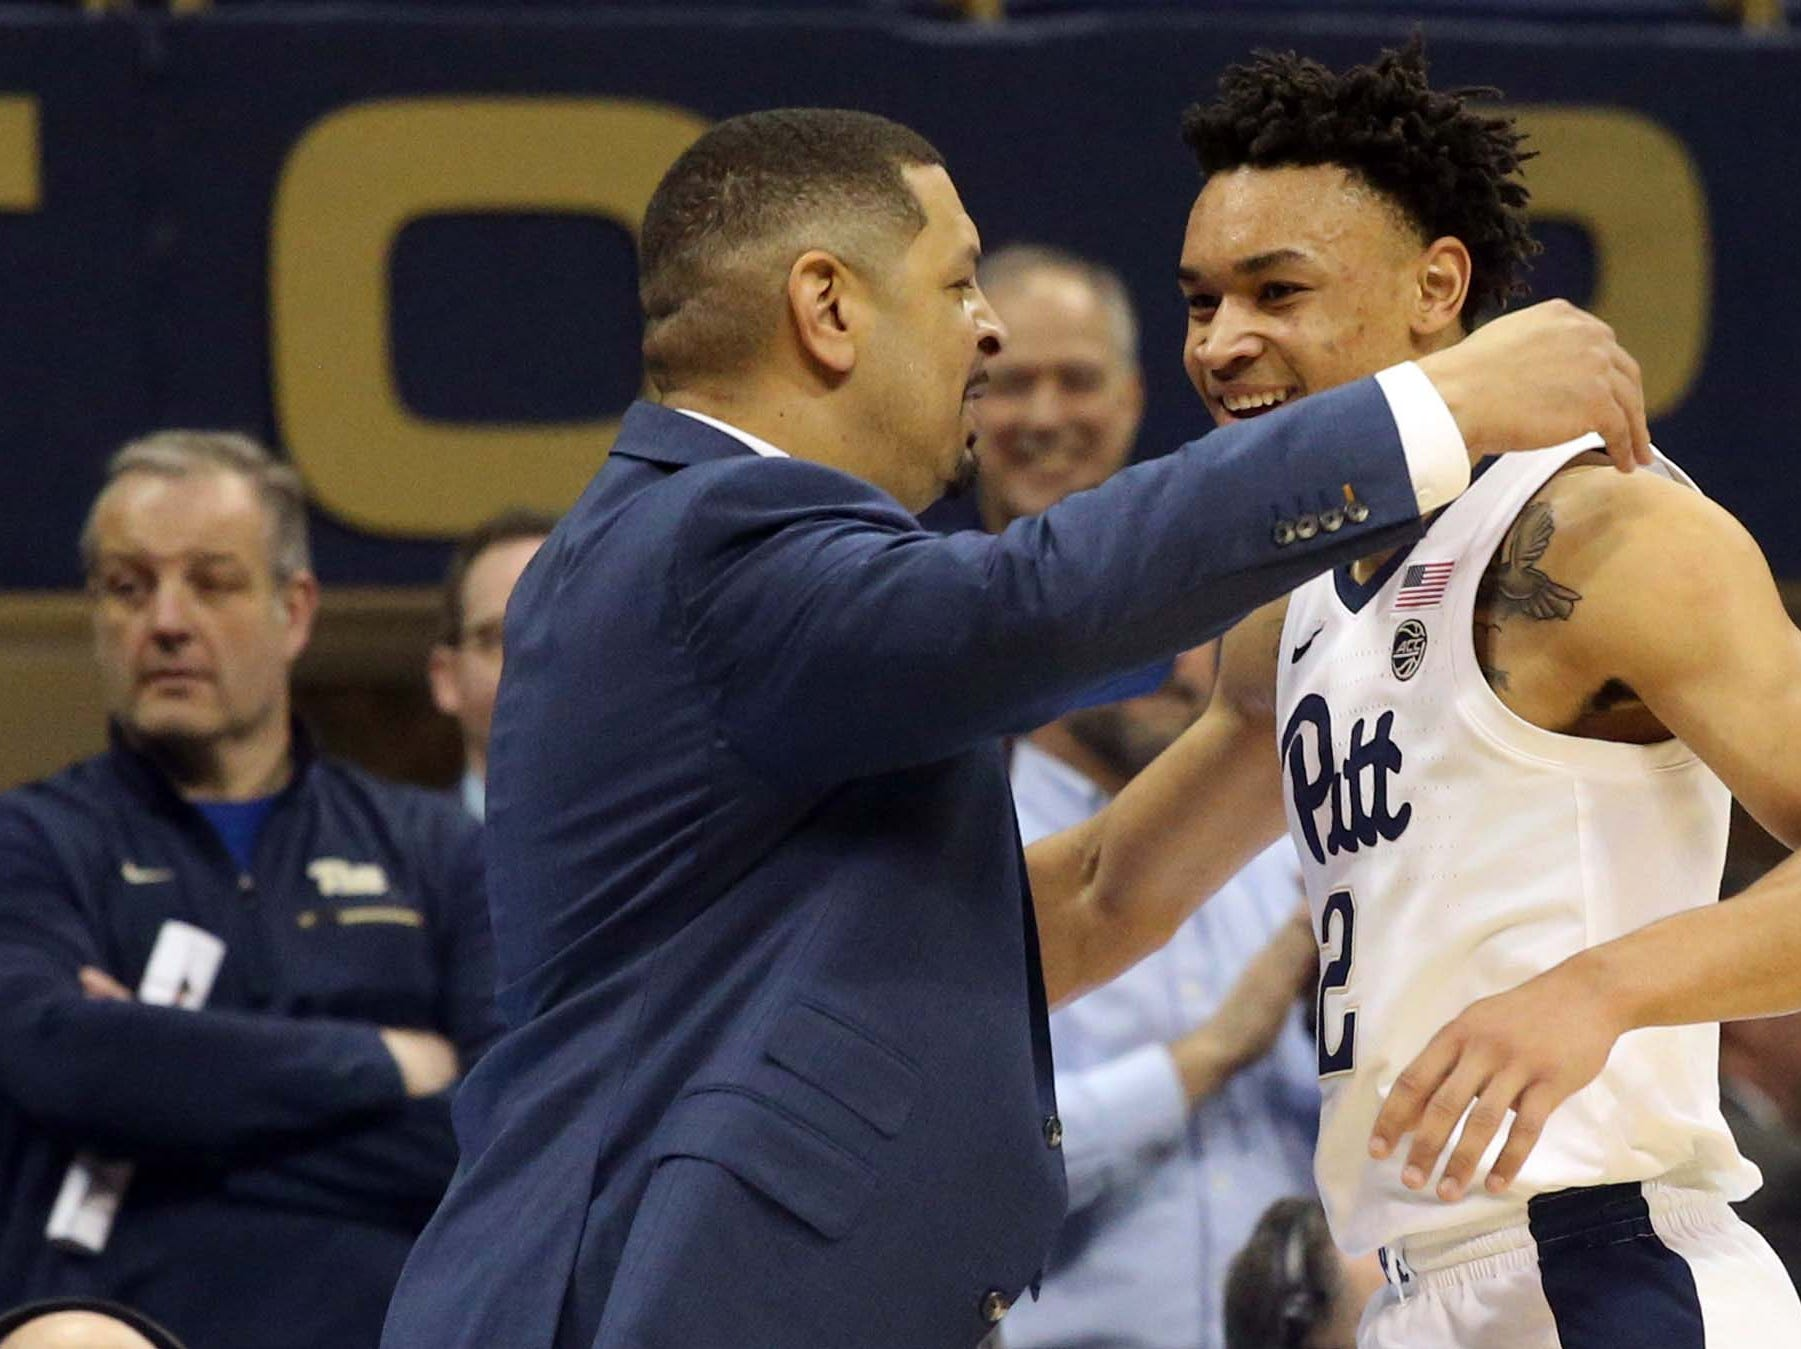 Jan 14, 2019; Pittsburgh, PA, USA; Pittsburgh Panthers head coach Jeff Capel (left) embraces guard Trey McGowens (2) as he leaves the floor against the Florida State Seminoles during the second half at the Petersen Events Center. Mandatory Credit: Charles LeClaire-USA TODAY Sports